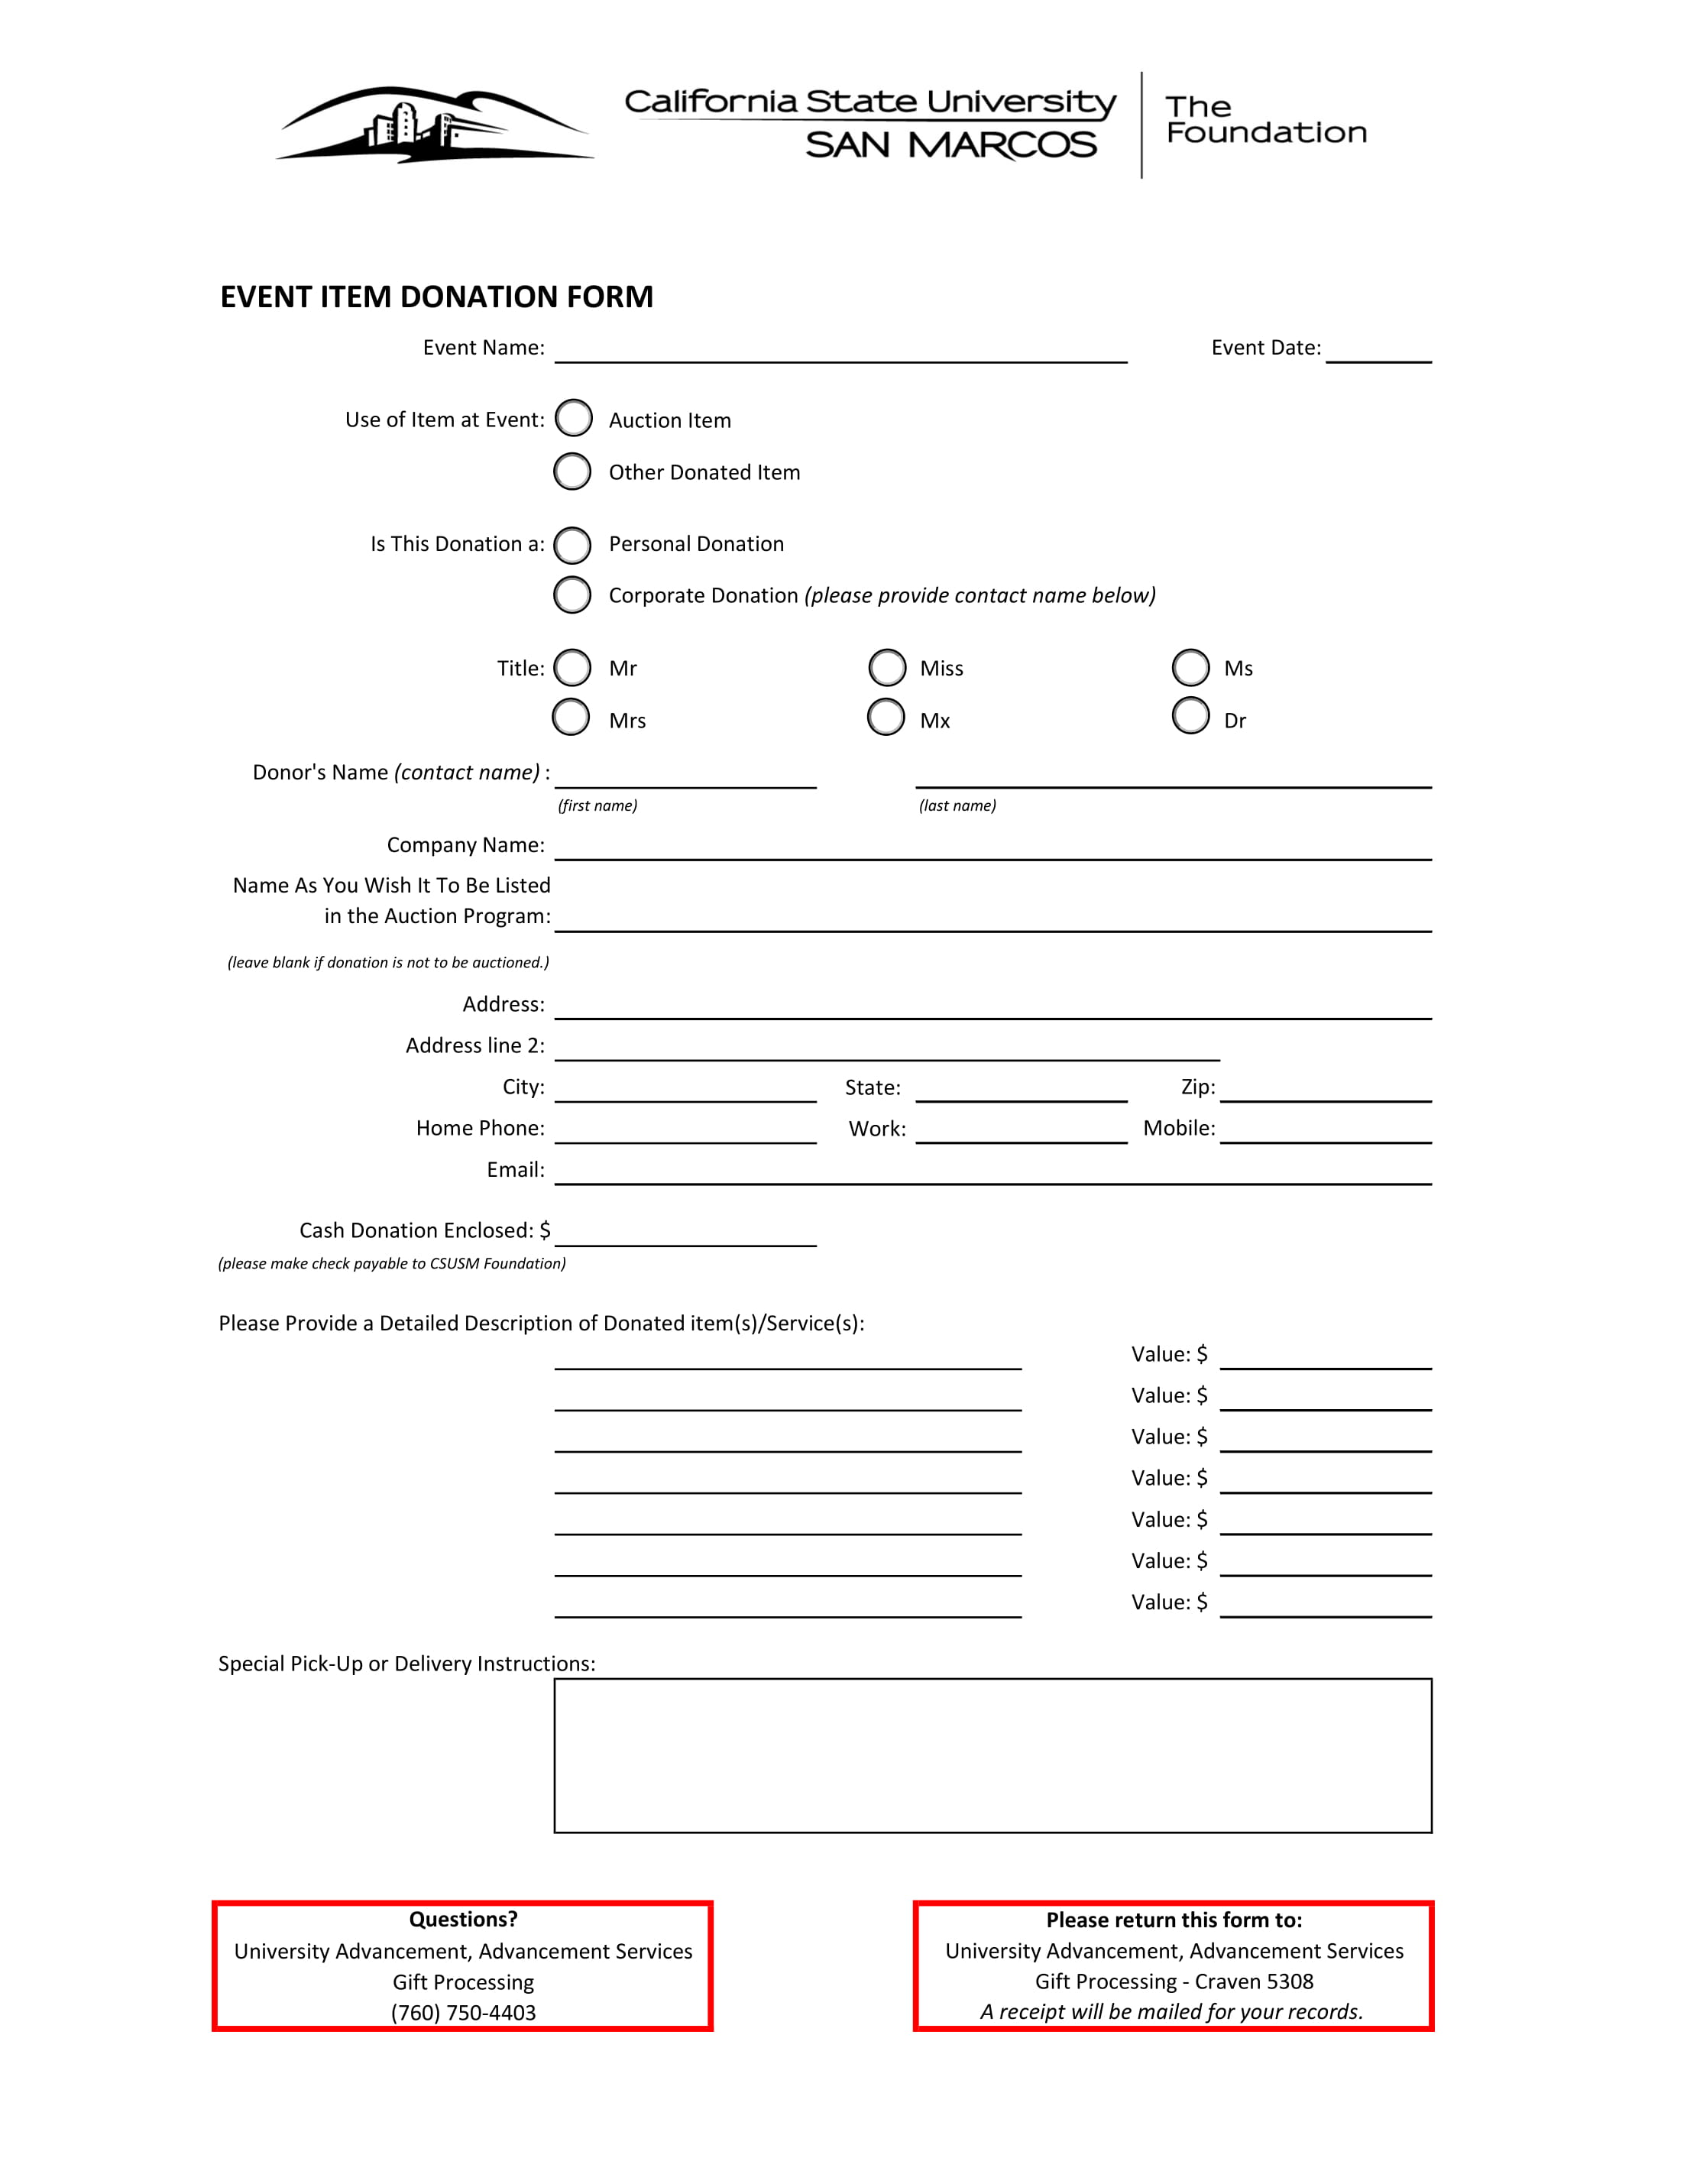 event item donation form 1